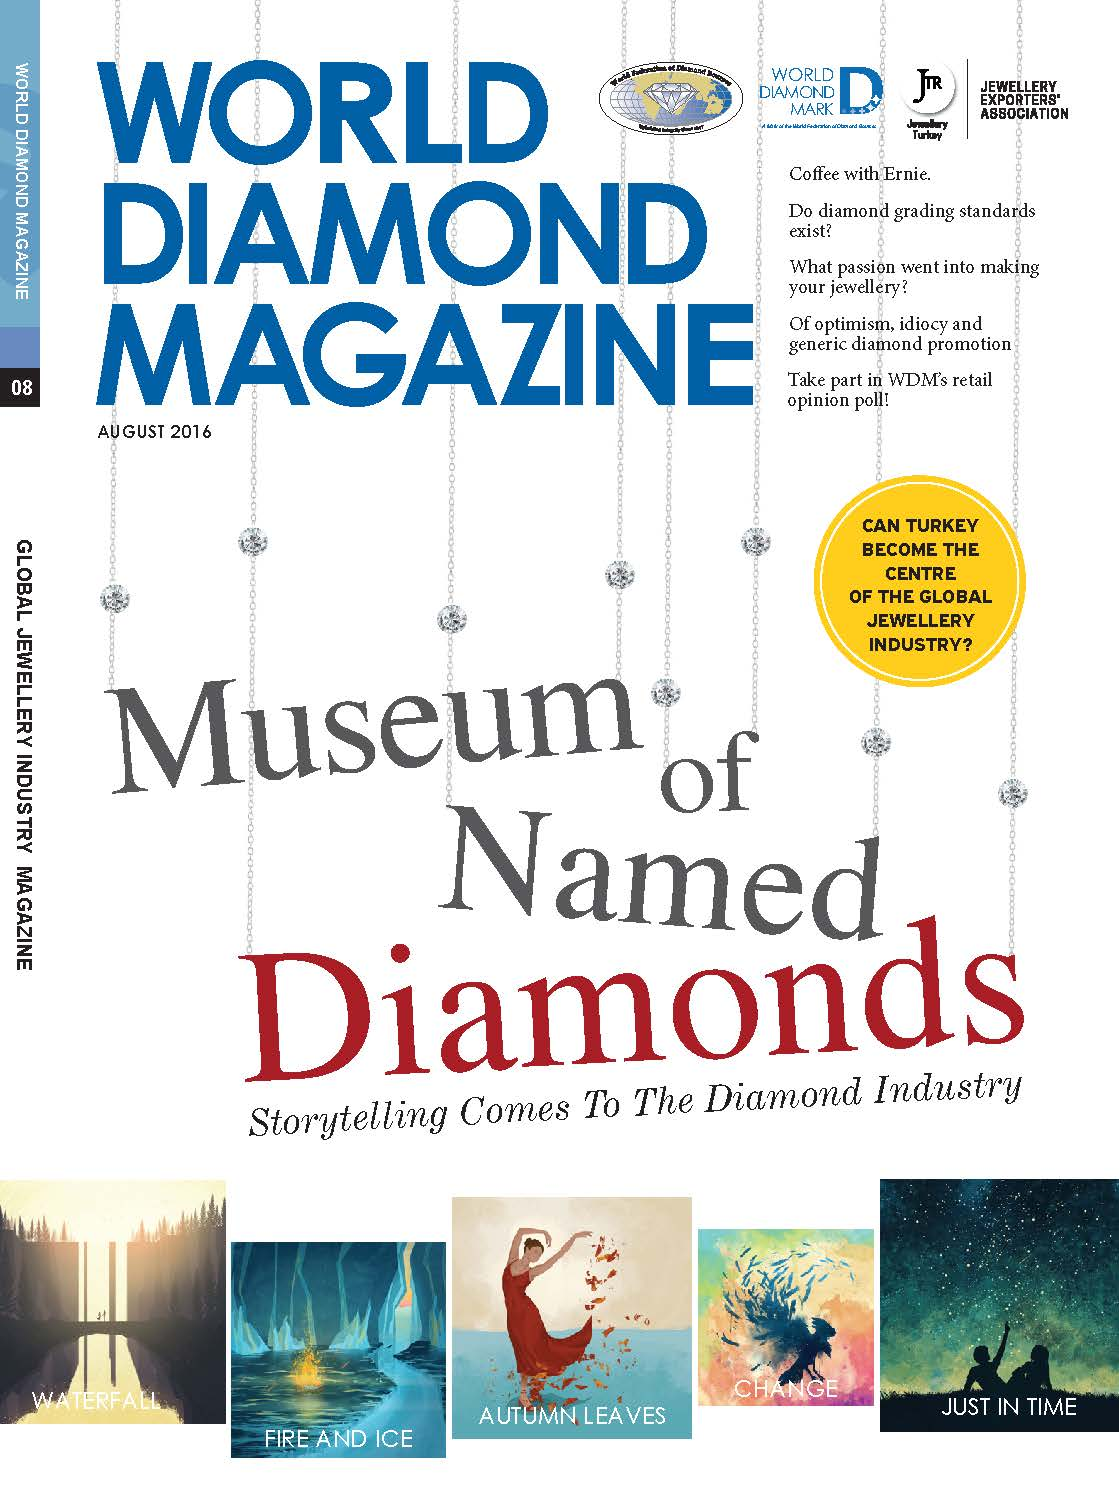 World Diamond Magazine